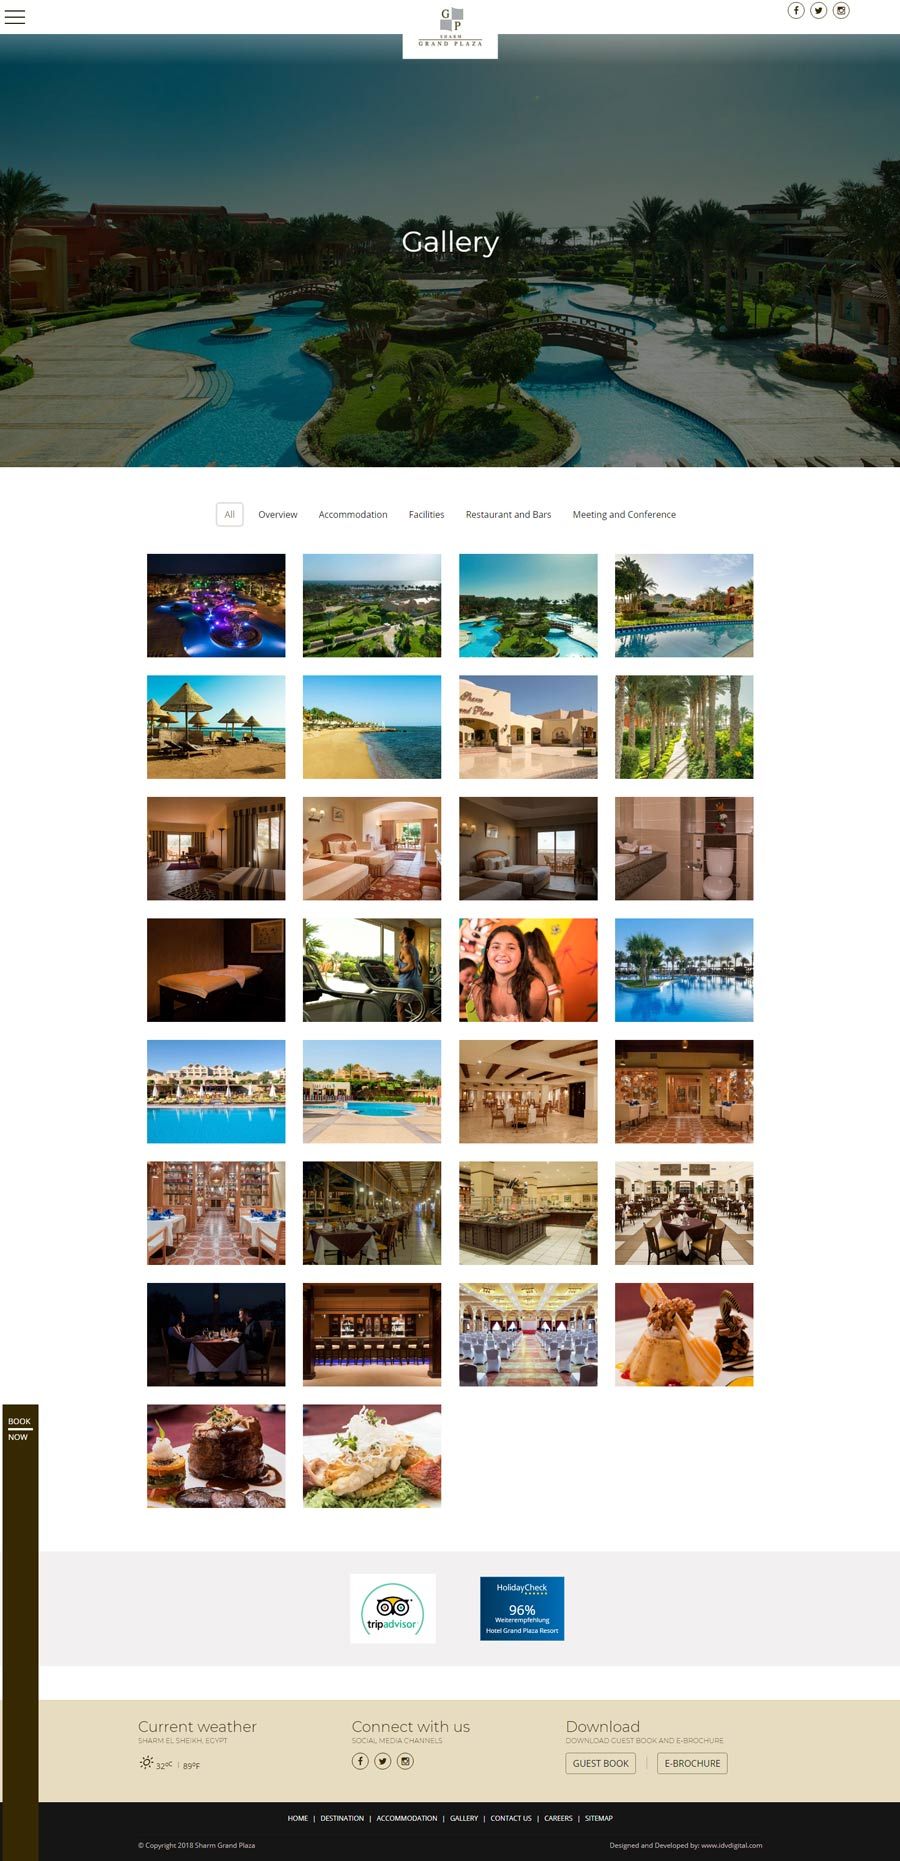 Sharm Grand-Gallery-web development